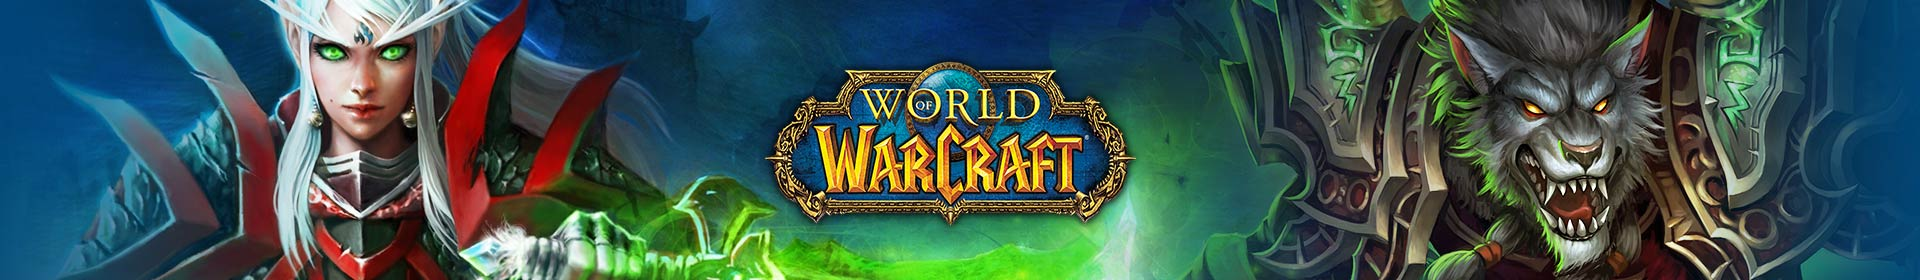 World of Warcraft Gold US